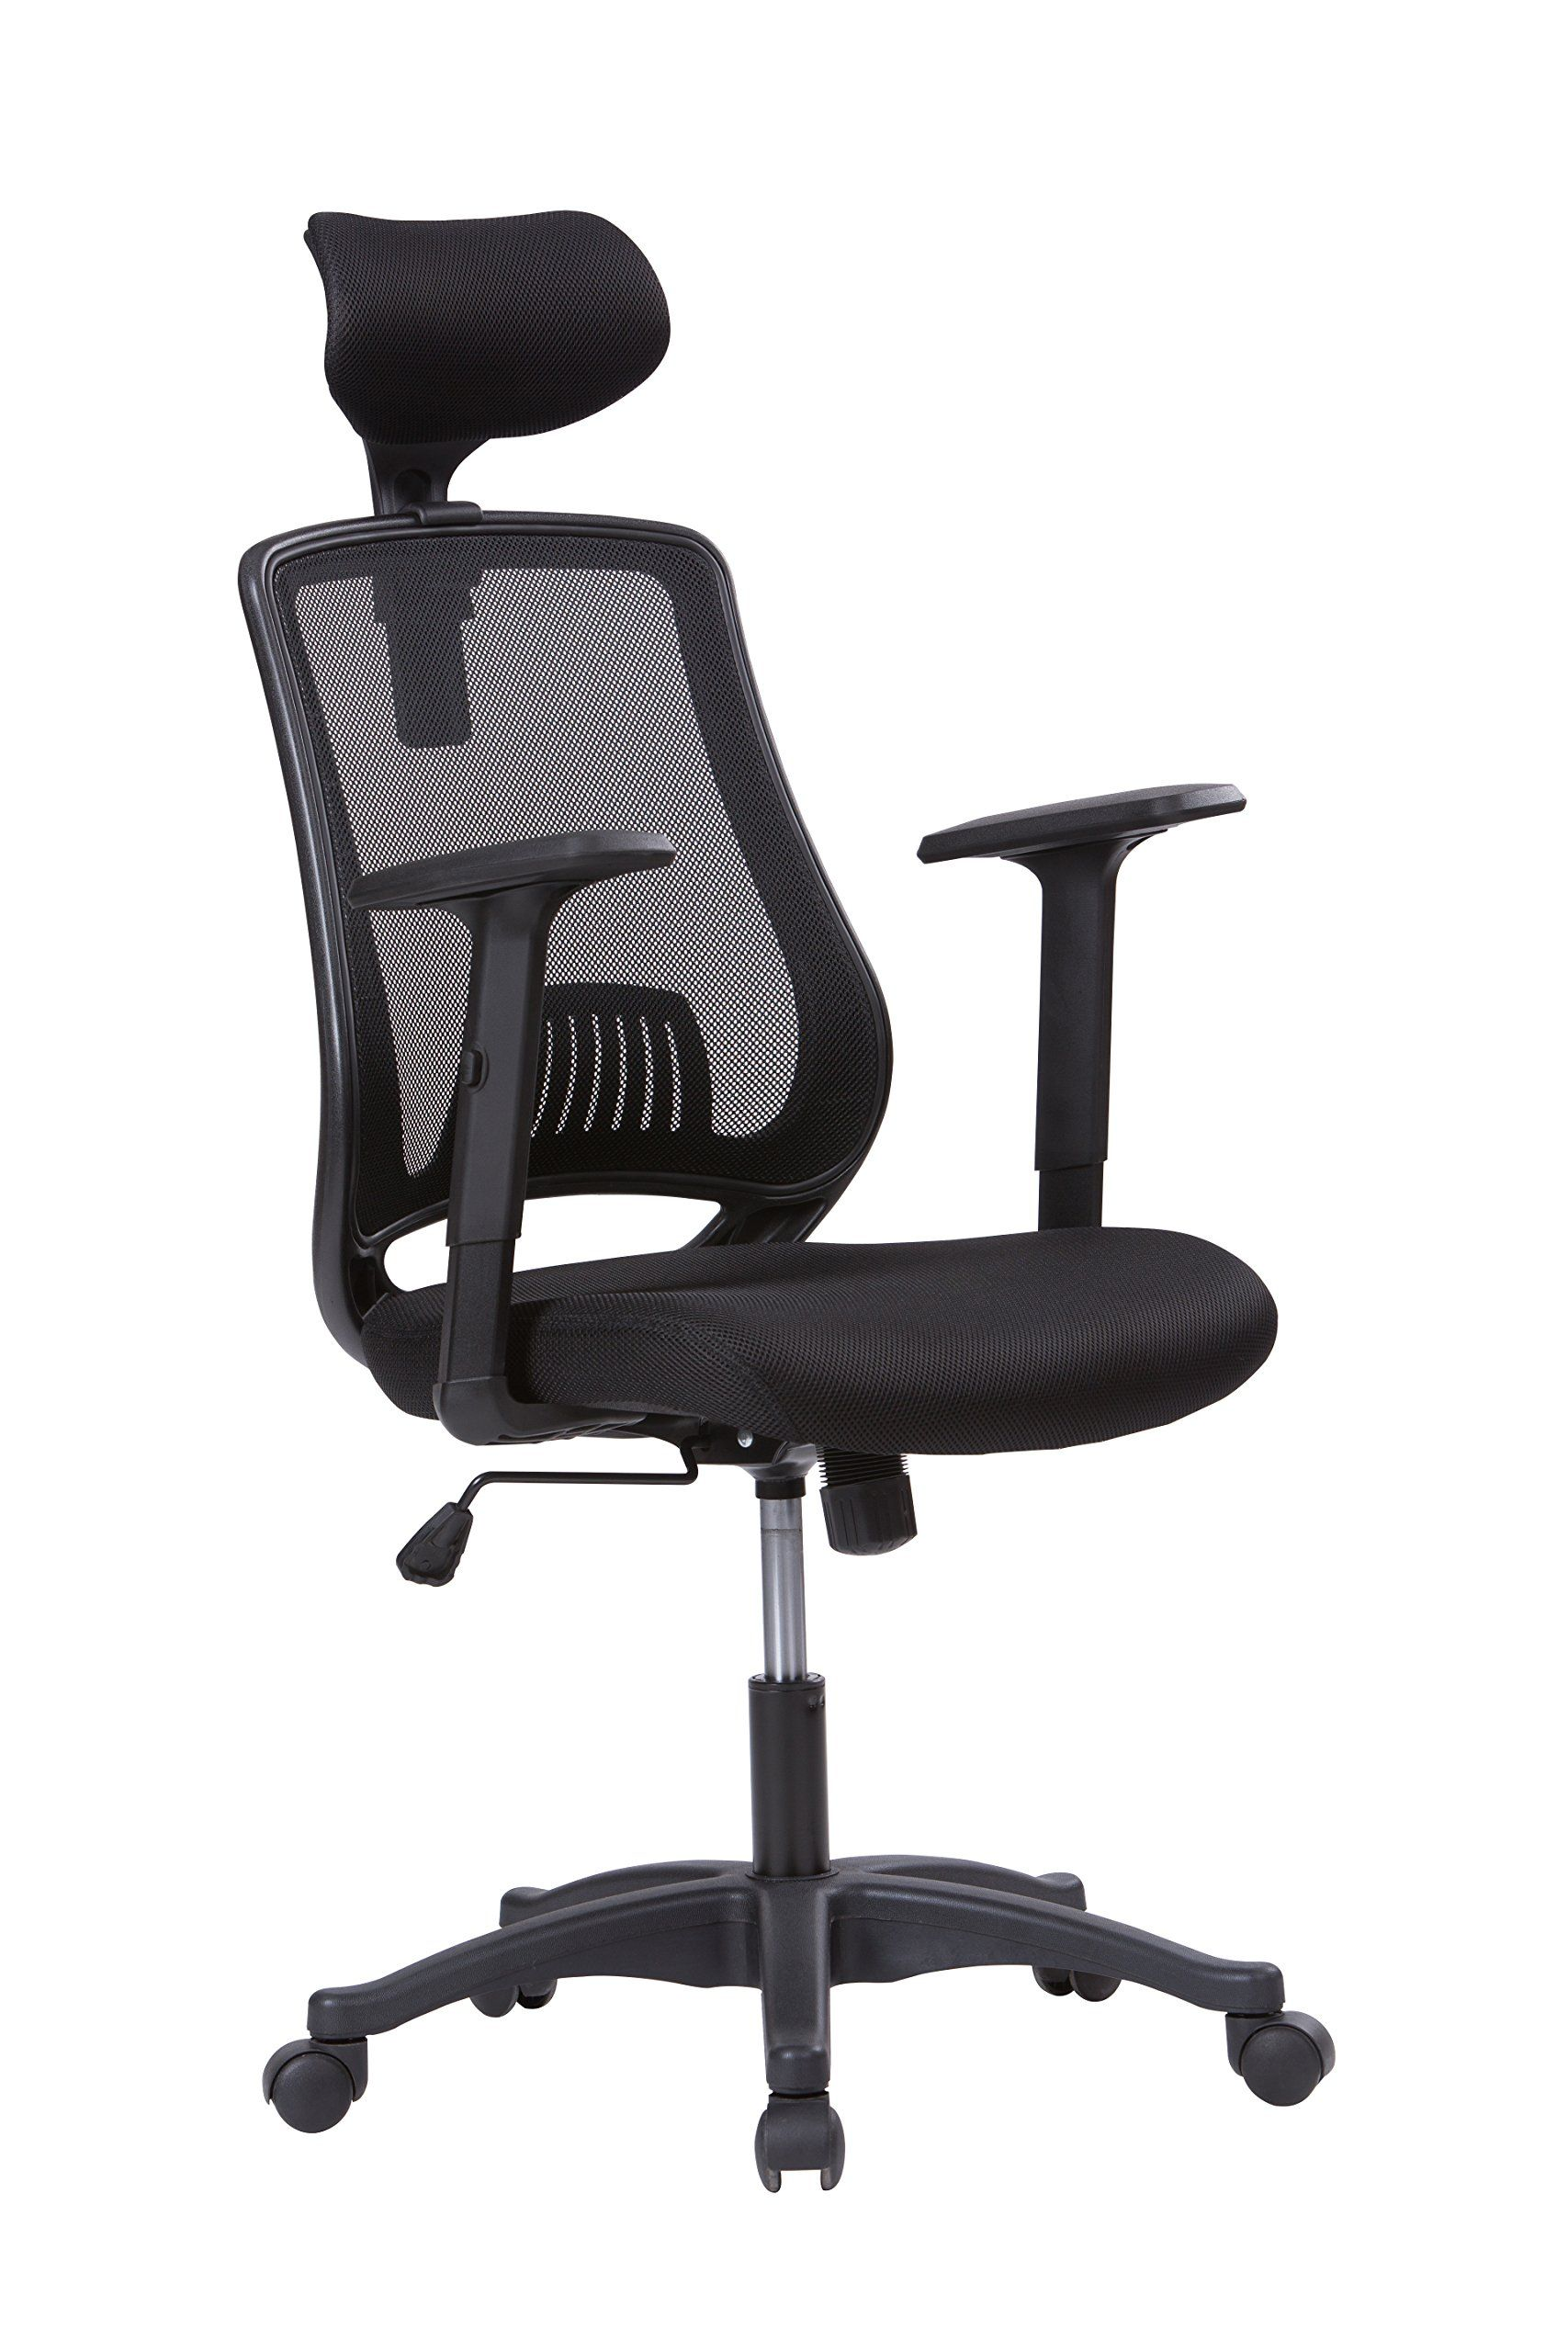 Office Chair With Adjustable Arms Longem High Back Mesh Office Chair Breathable Ergonomic Computer